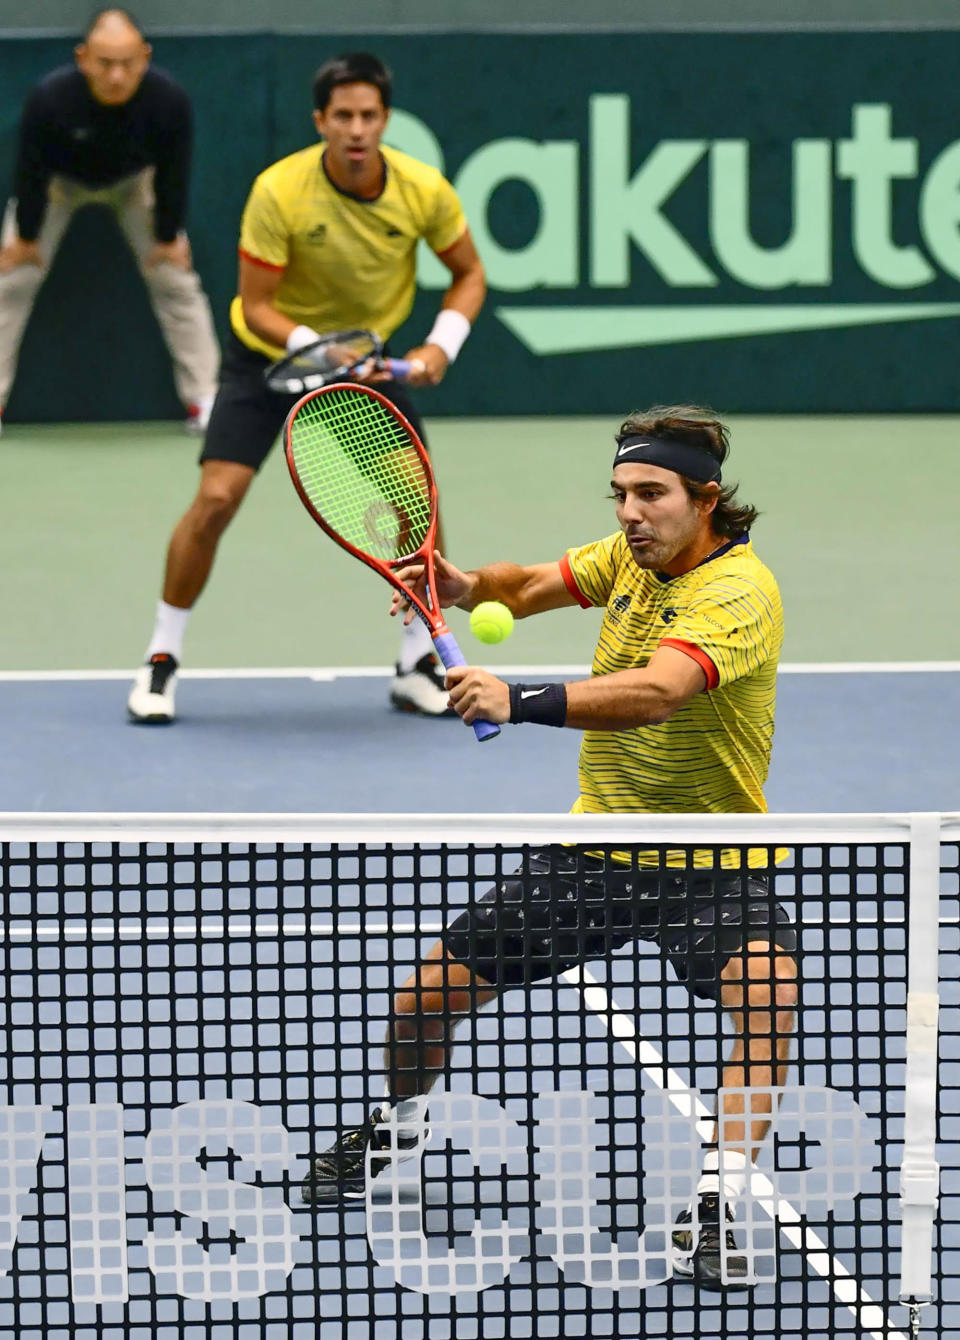 Ecuador's Diego Hidalgo, front, makes a return as his compatriot Gonzalo Escobar looks on in their double match against Japan's Ben McLachlan and Yasutaka Uchiyama during their Davis Cup qualifier in Miki, Hyogo prefecture, western Japan, Saturday, March 7, 2020. With no fans in the stands to give host Japan a boost, Ecuador took an insurmountable 3-0 lead on Saturday to secure a place in November's Davis Cup Finals in Madrid.(Nobuki Ito/Kyodo News via AP)